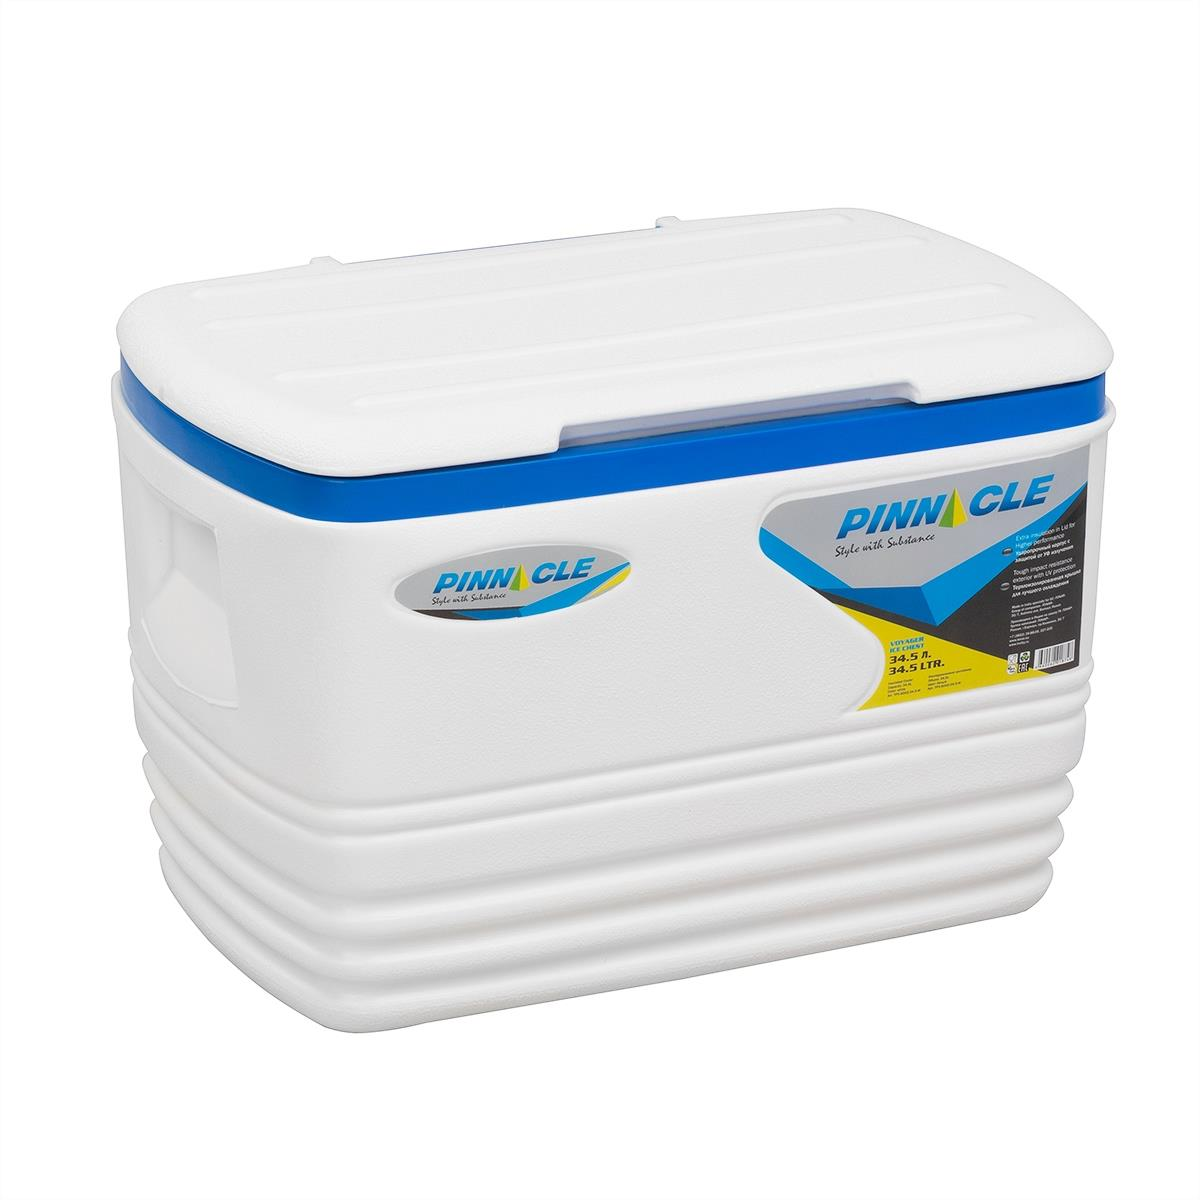 Isothermal. Container Voyager 34.5l White Supplier. 5-w Pinnacle